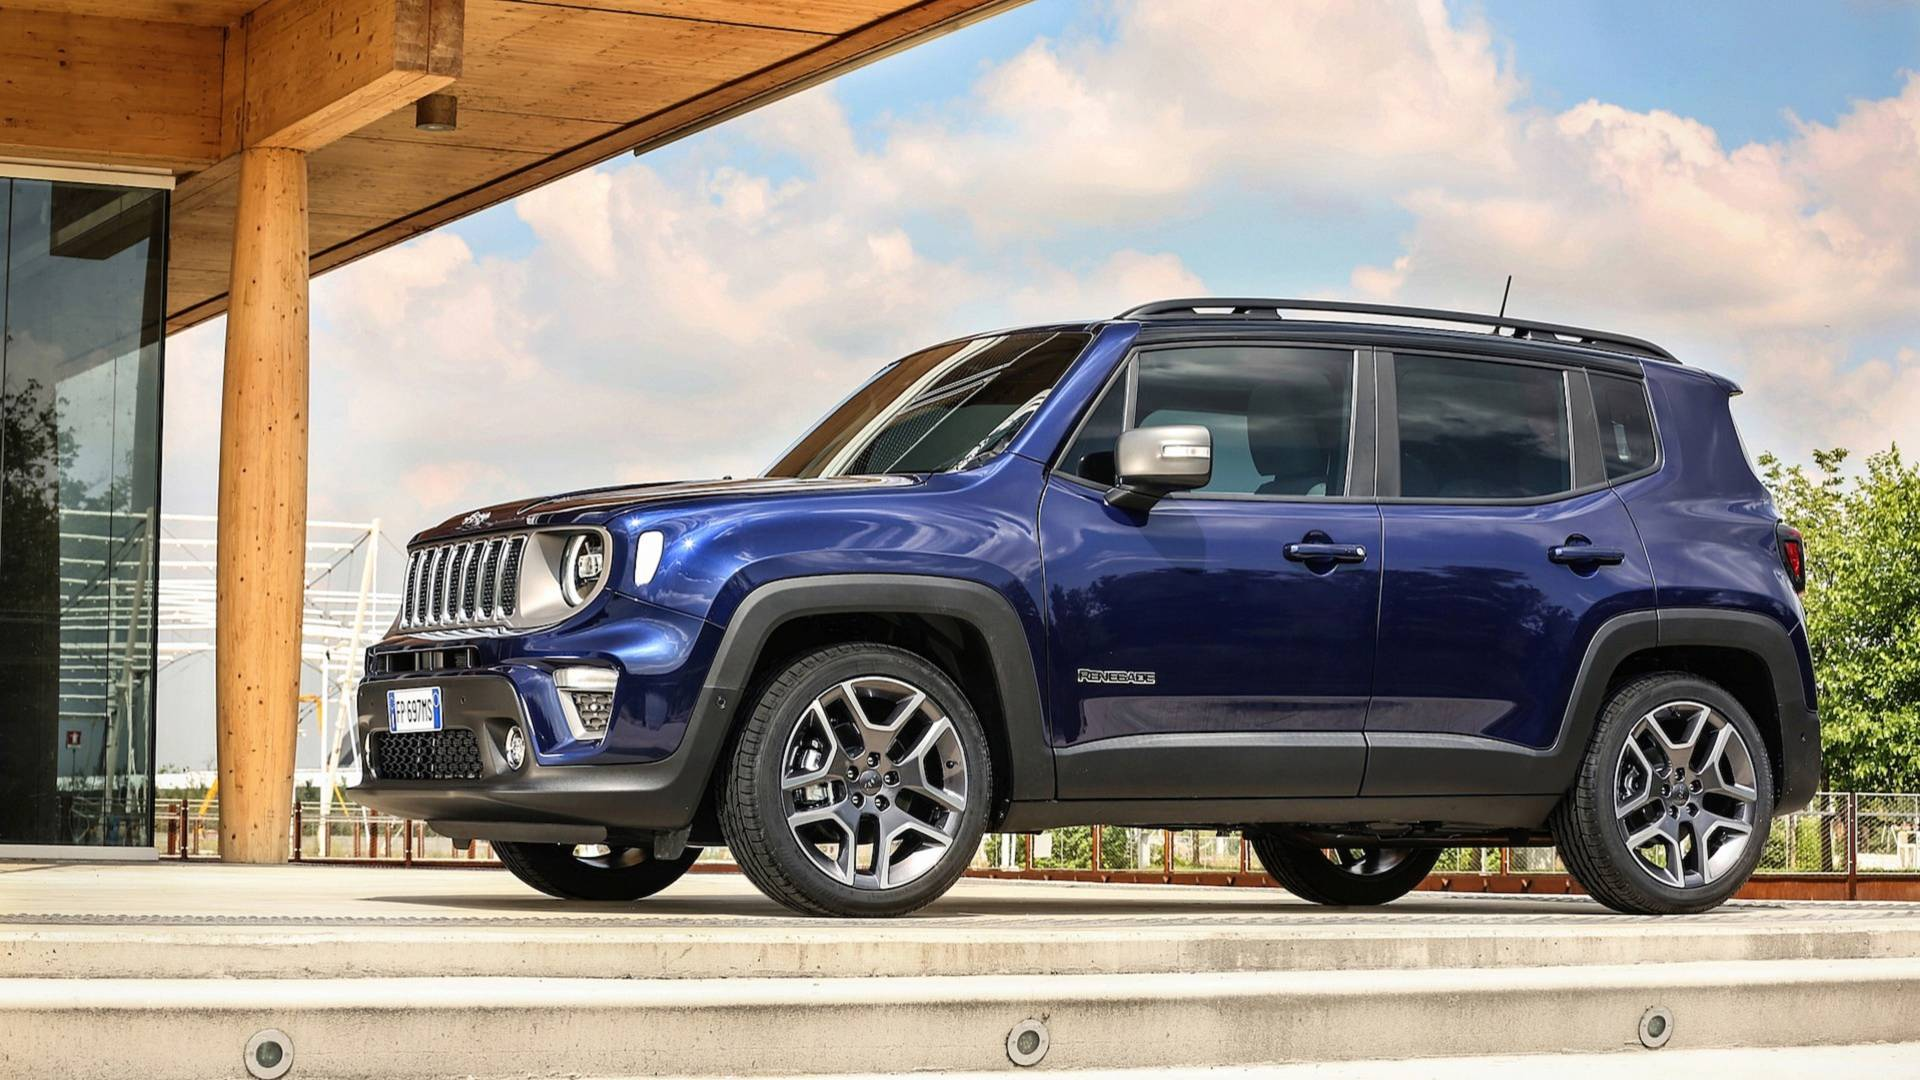 jeep renegade crash tested by the euro ncap awarded the coveted 5 star rating autoevolution. Black Bedroom Furniture Sets. Home Design Ideas